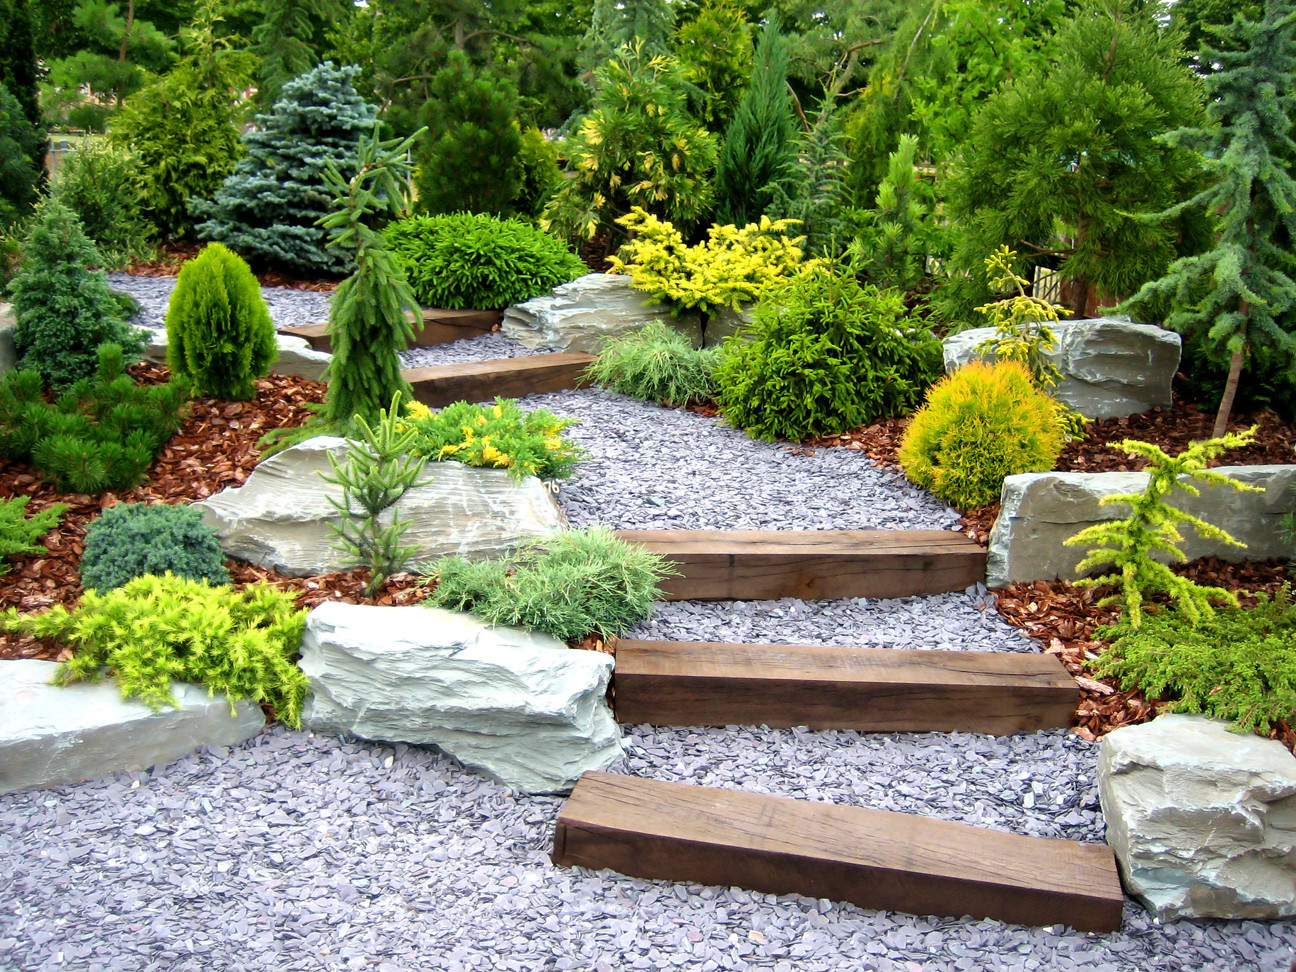 Glamorous Landscape Design - Garden Works throughout Landscape Design Images